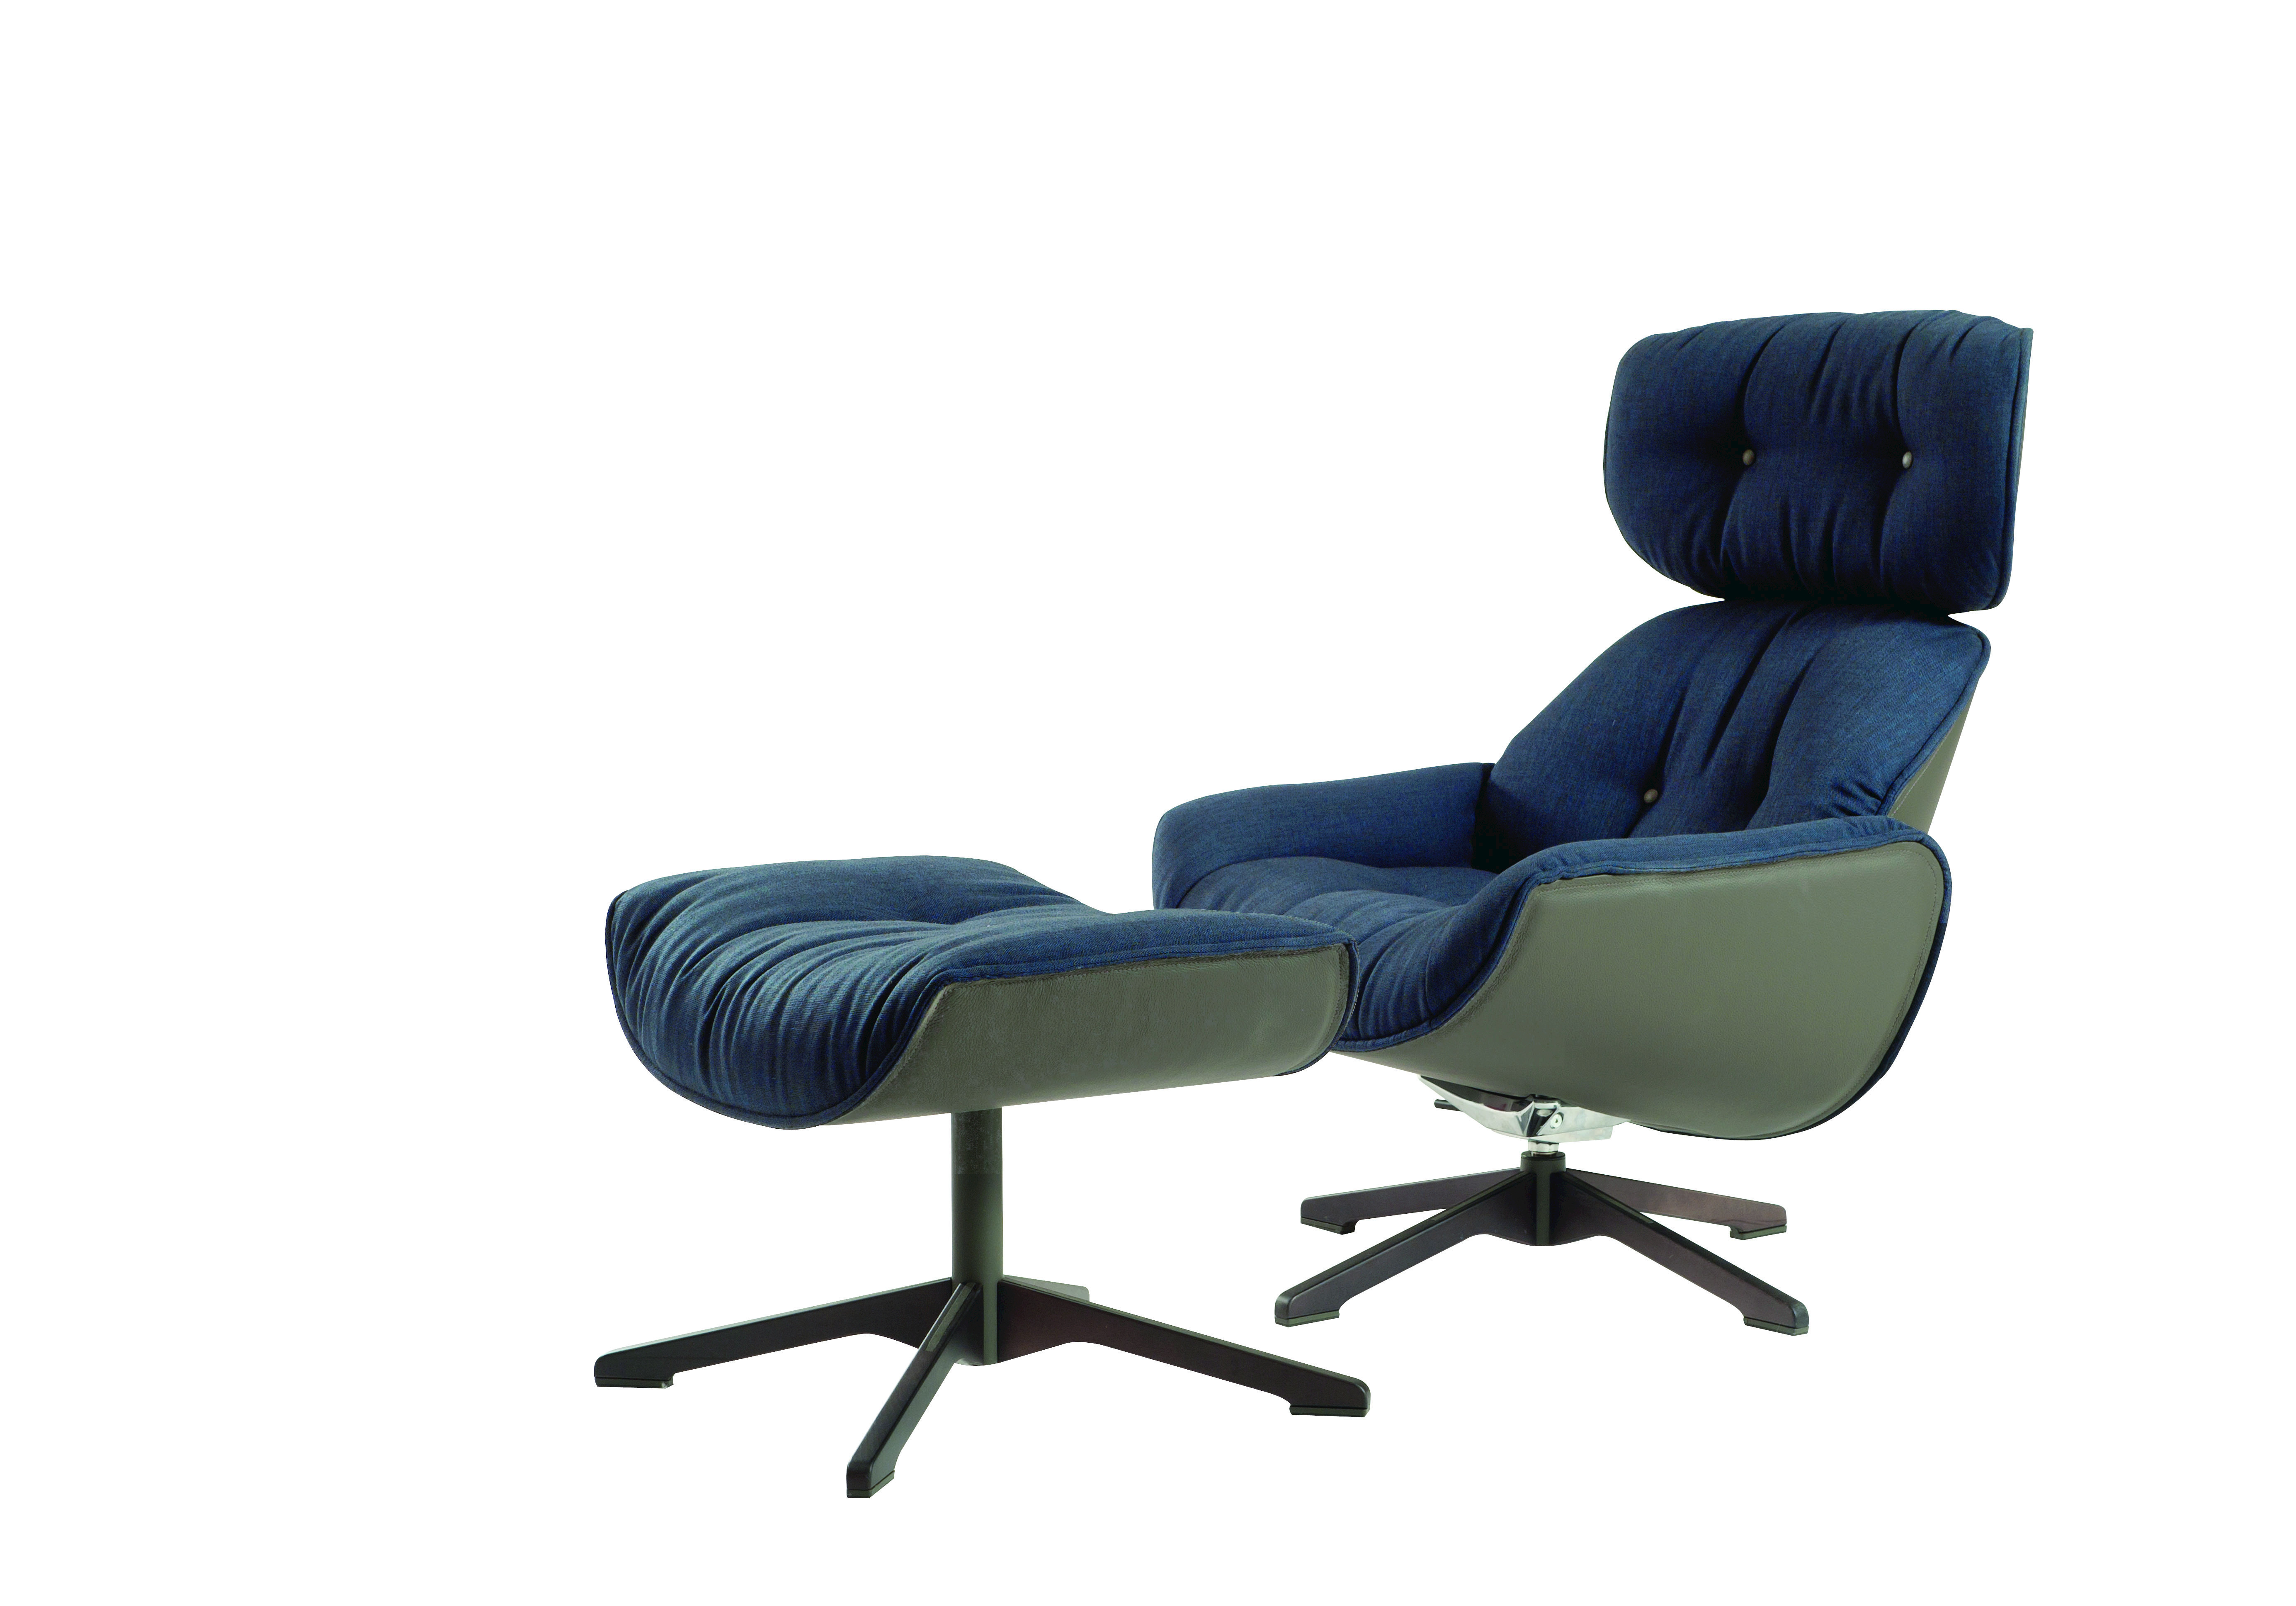 Roche Bobois Fauteuil Relax Quiet Life Collection Les Contemporains By Roche Bobois